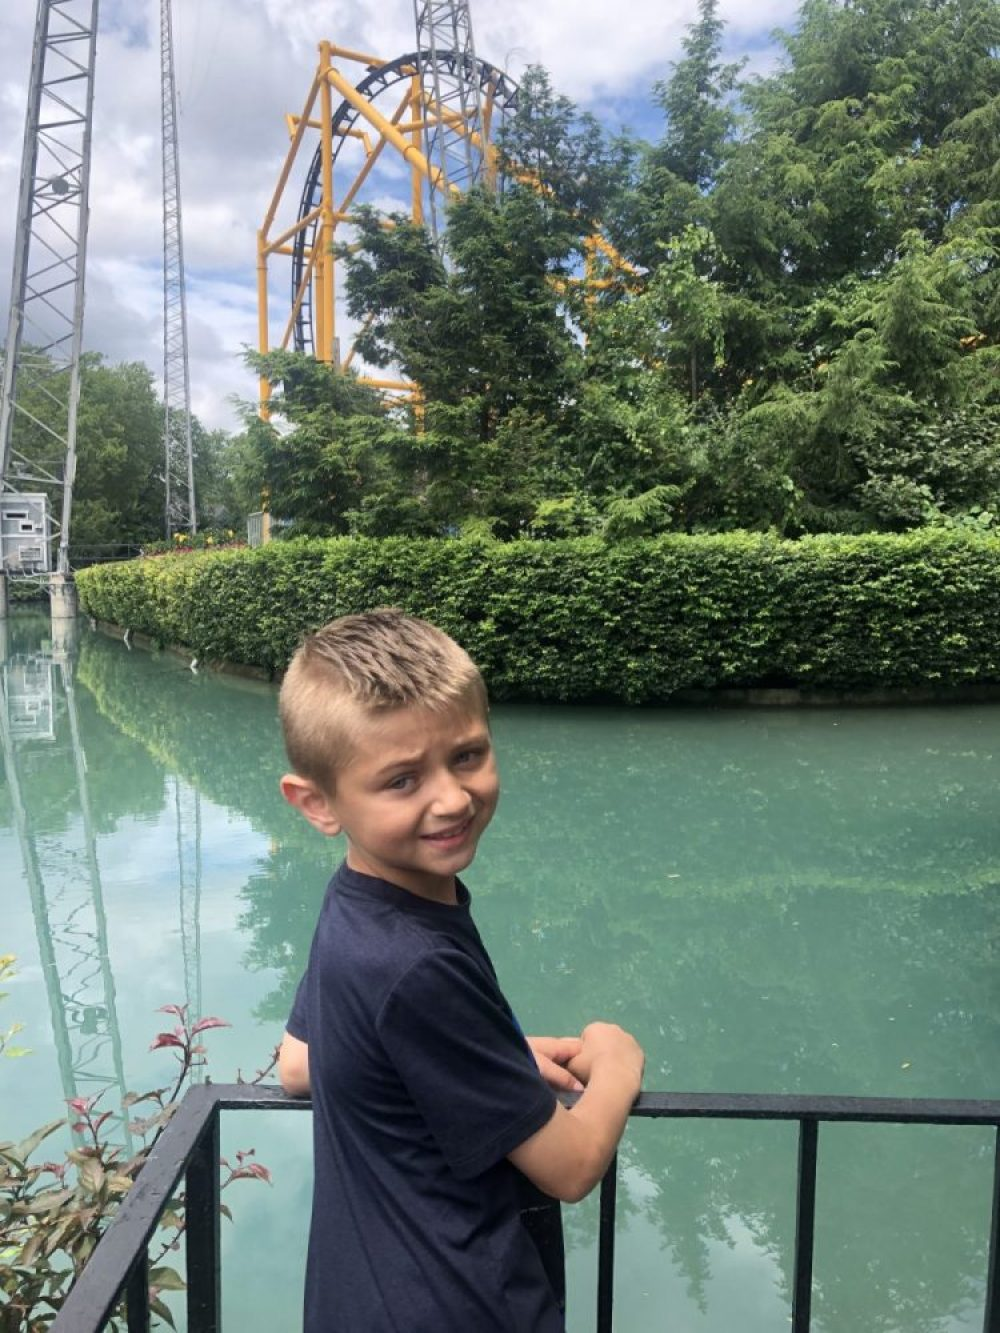 Kennywood Park And Special Discounted Tickets for My Readers! 85